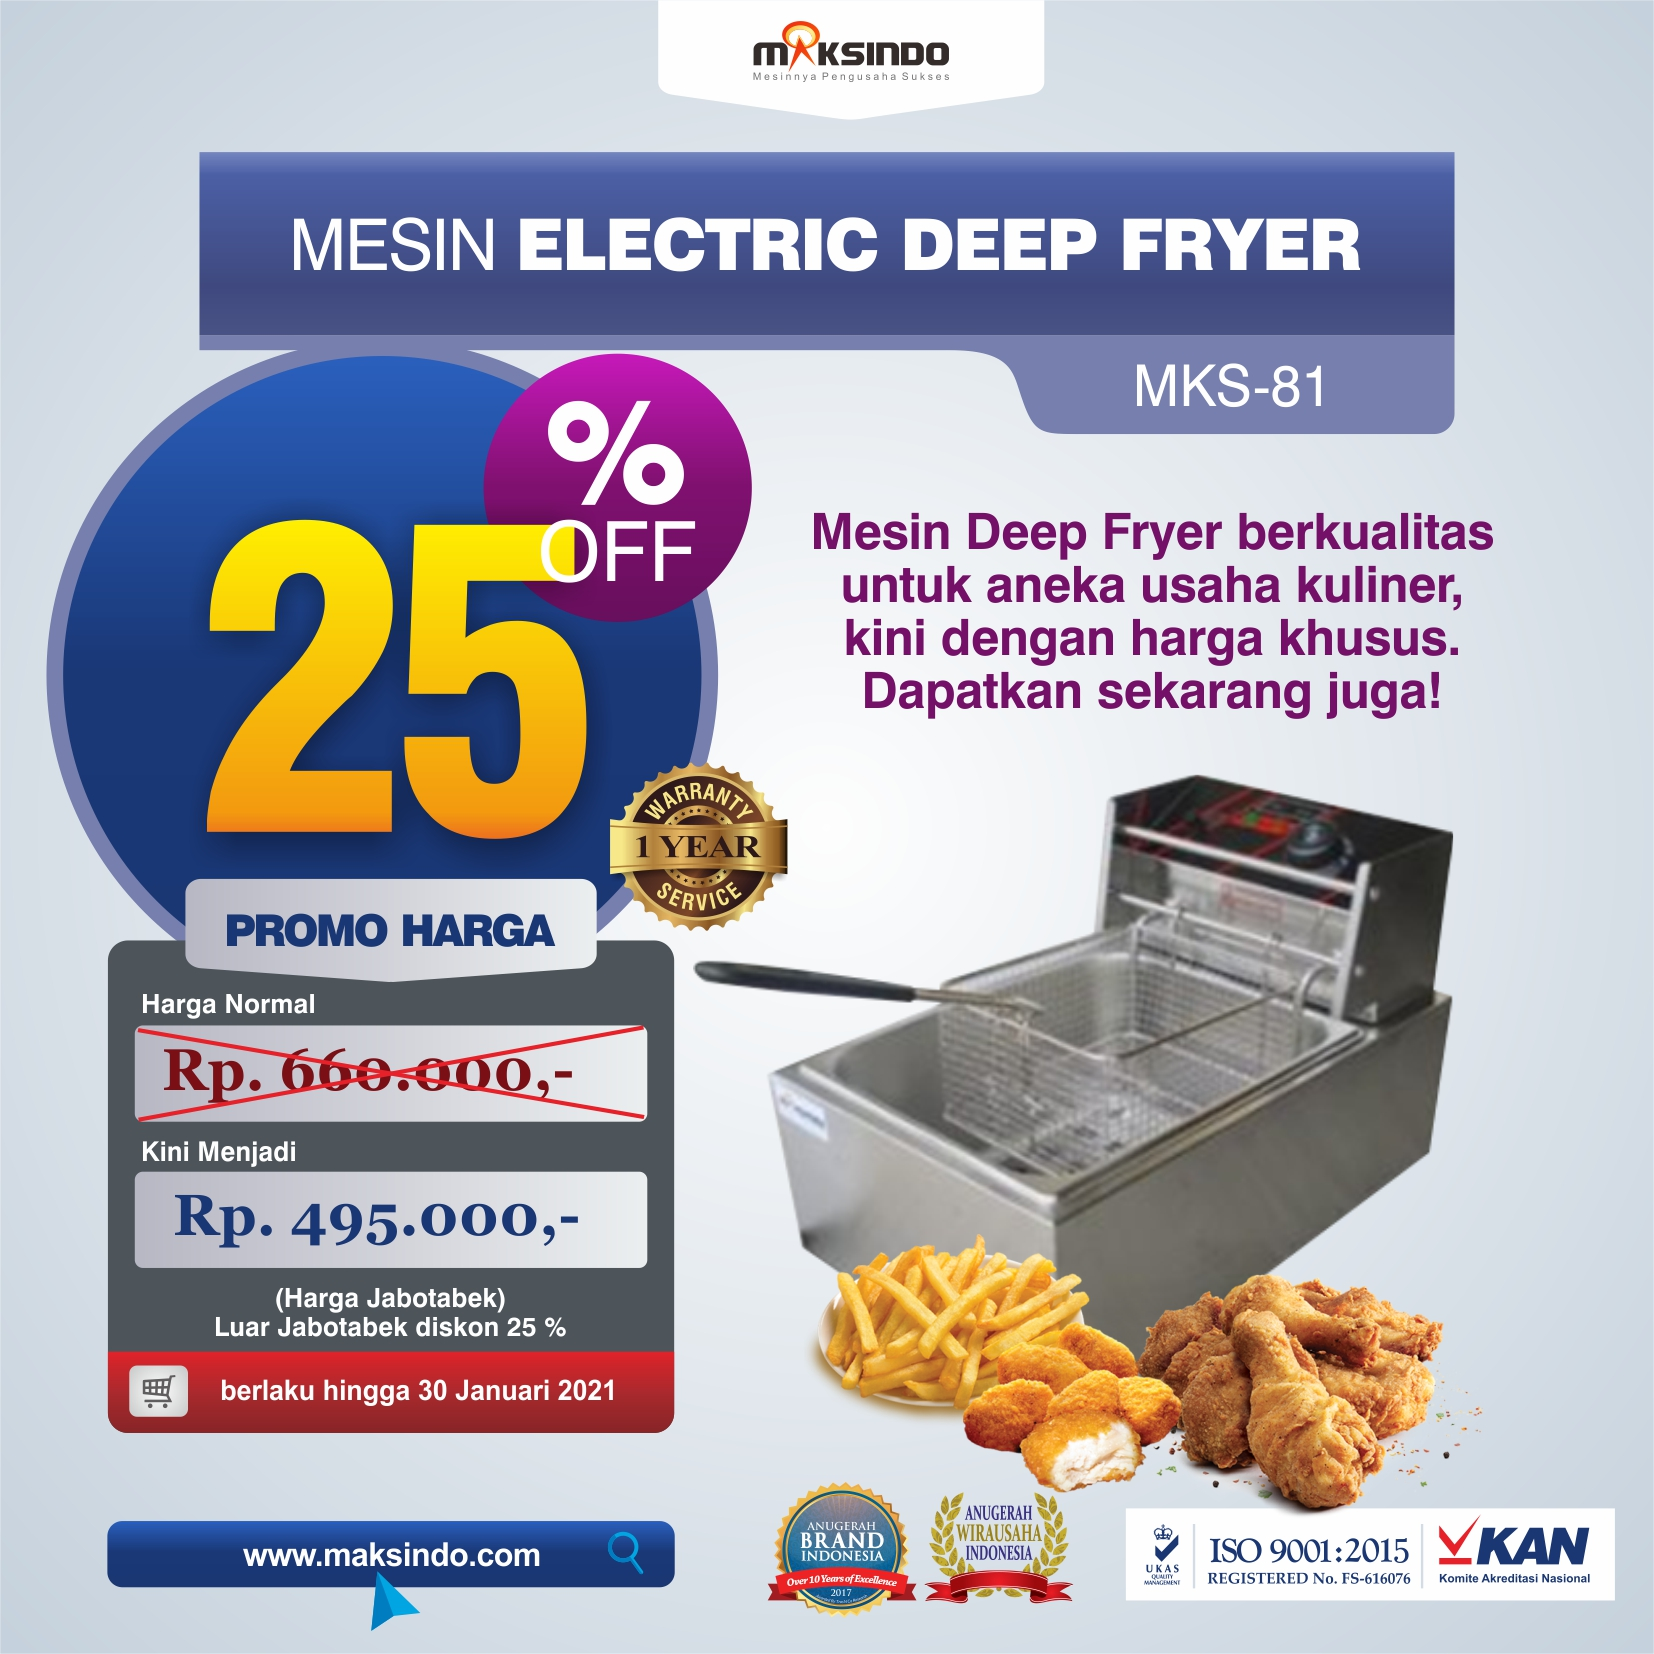 Jual Mesin Electric Deep Fryer MKS-81 di Makassar